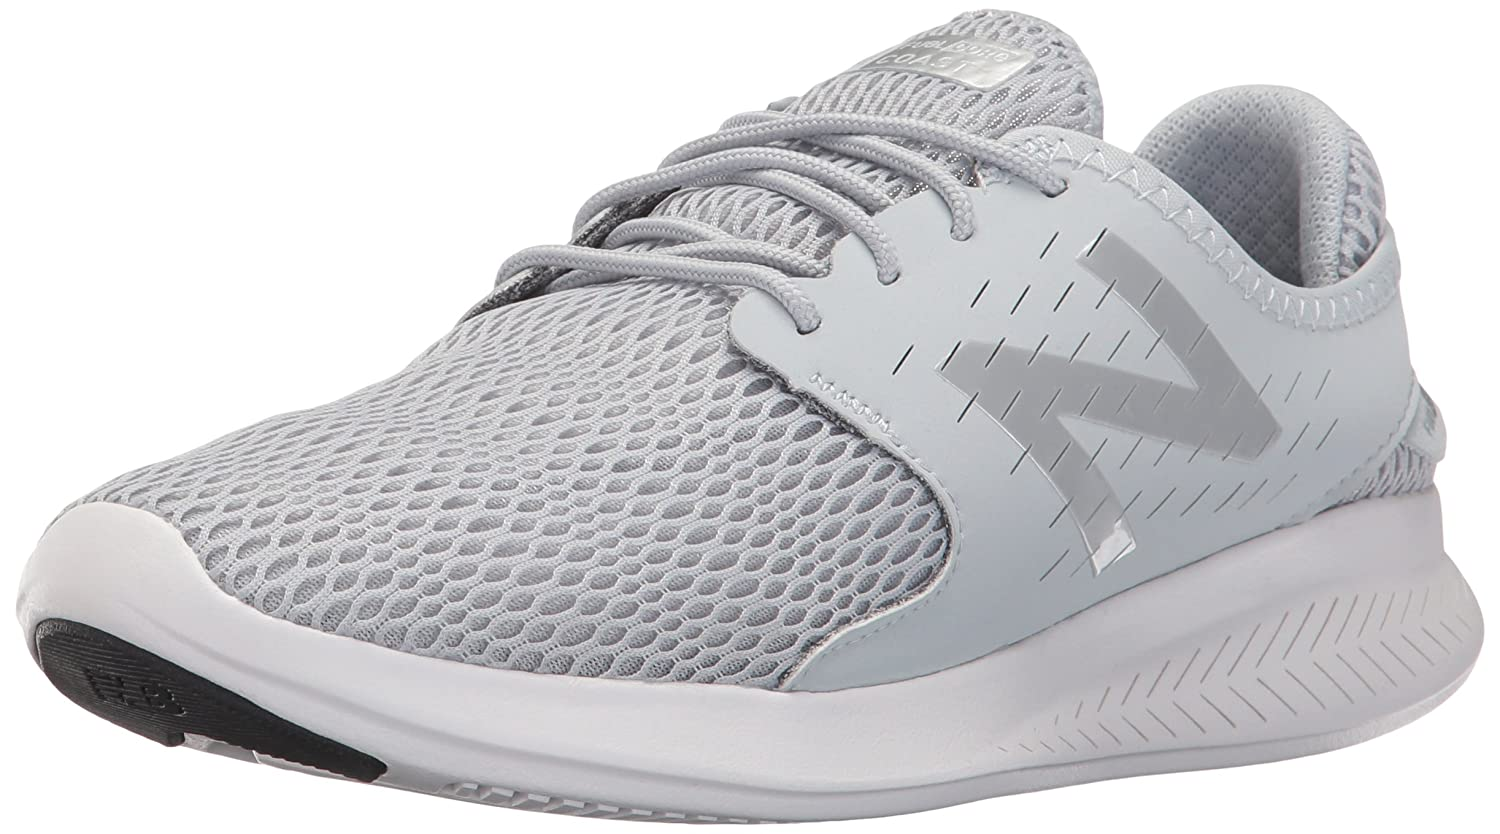 New Balance Women's Coast V3 Running-Shoes B01N1I16ZE 6.5 B(M) US|Light Grey